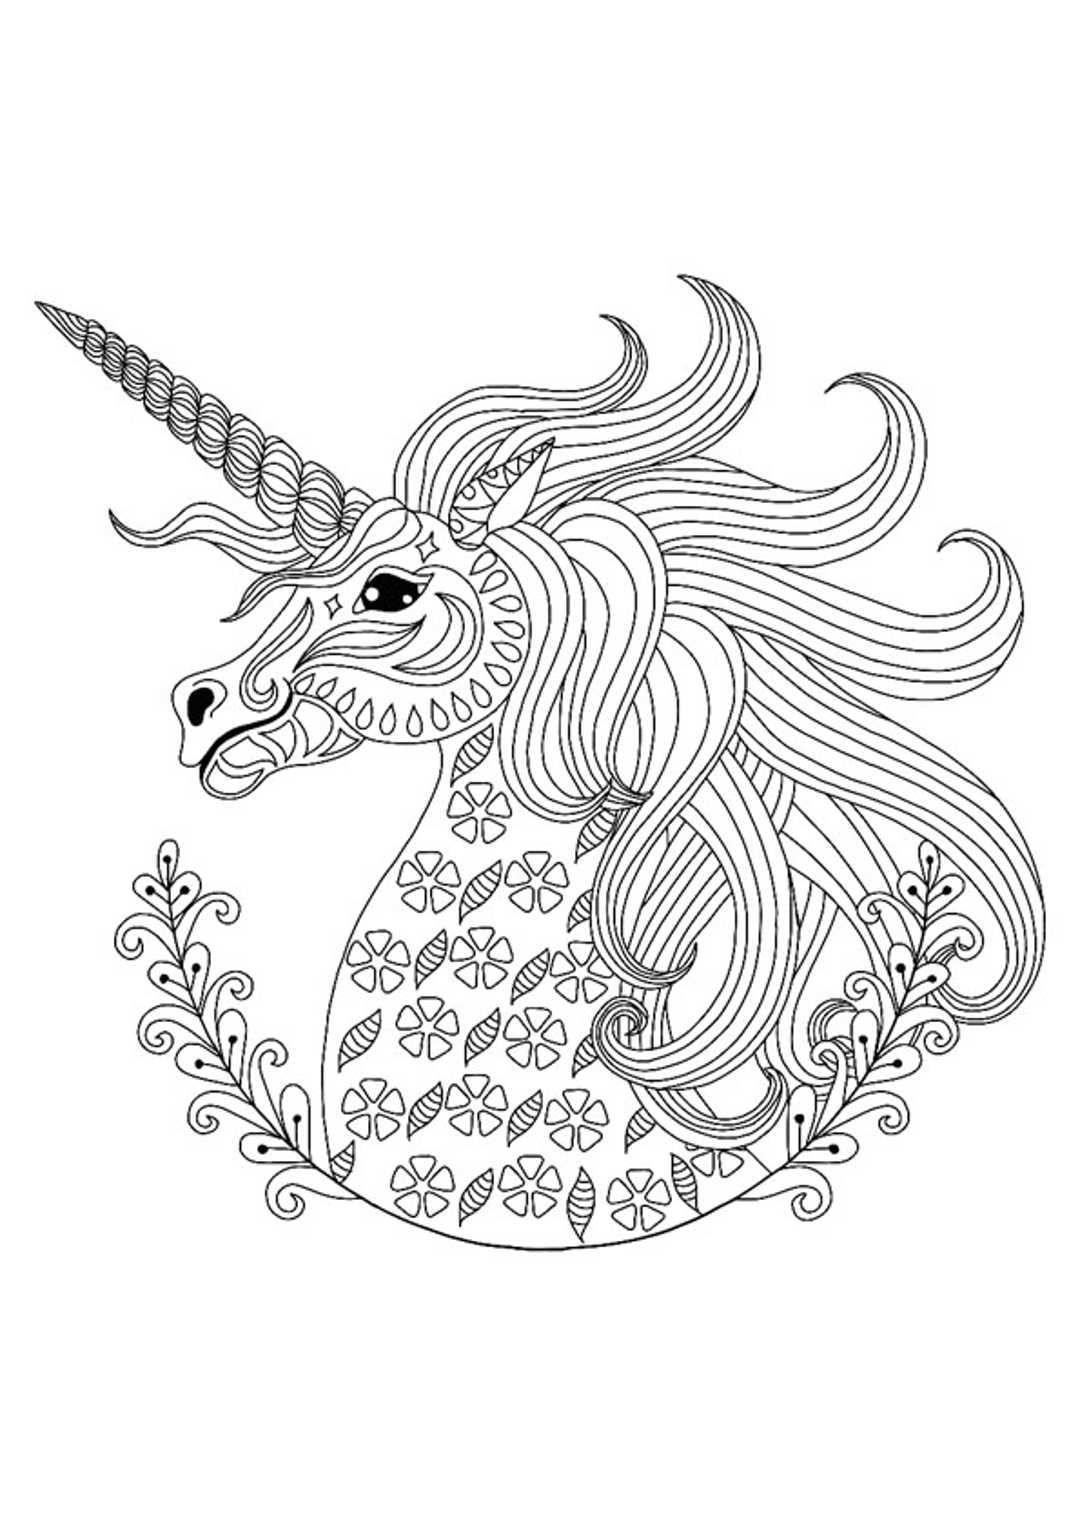 Unicorn Mandala Coloring Pages in 2020 | Mandala coloring ...